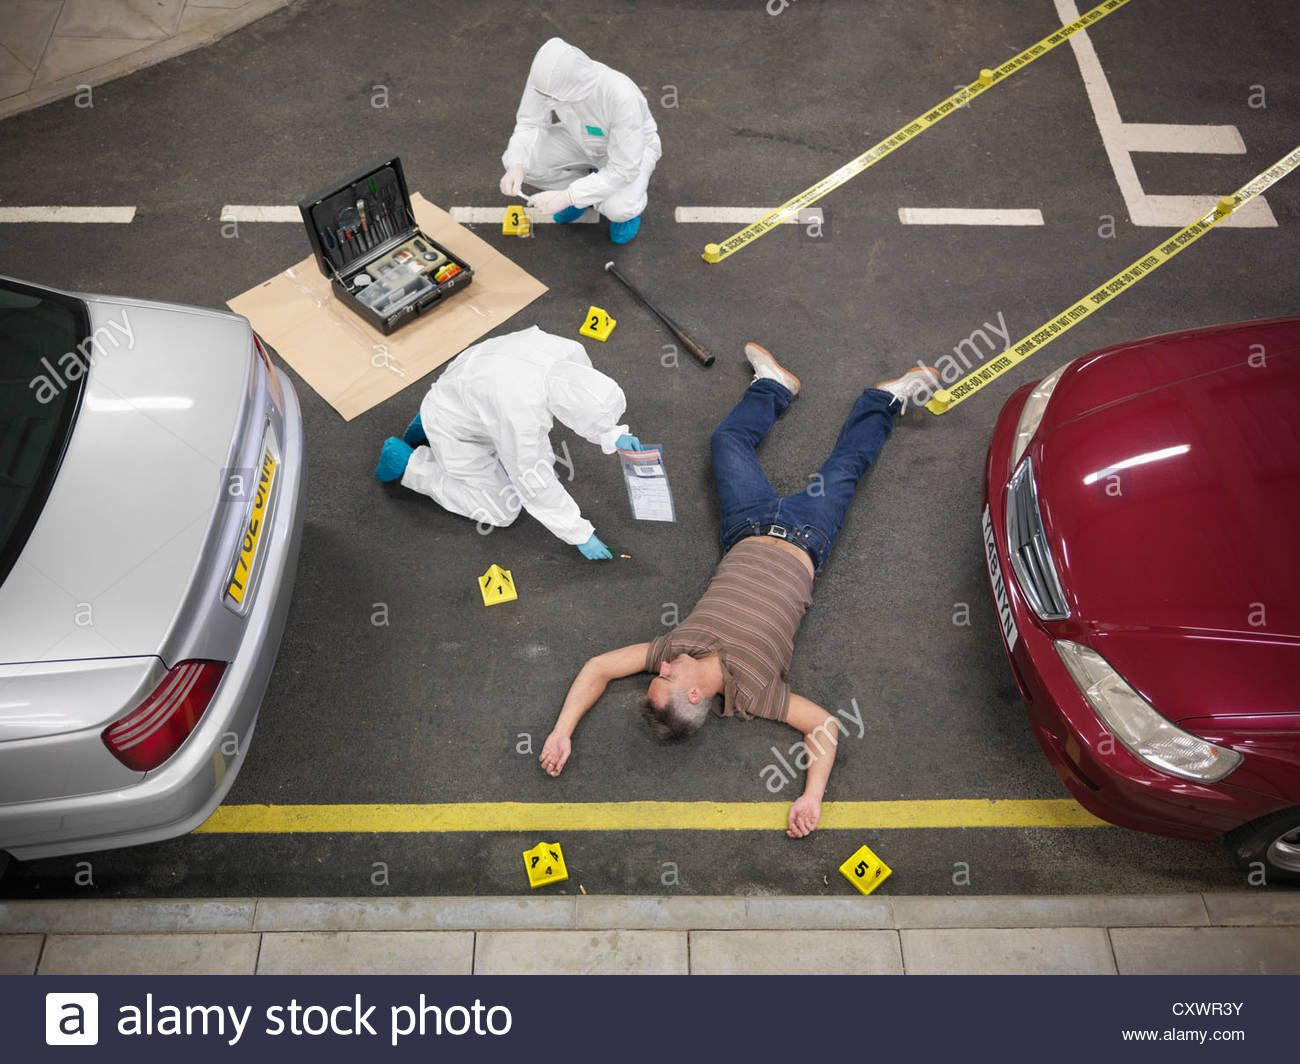 forensic science investigating a crime scene Securing a crime scene-common csi mistakes in the beginning securing a crime scene-common csi presents an ongoing forensic science reference for.